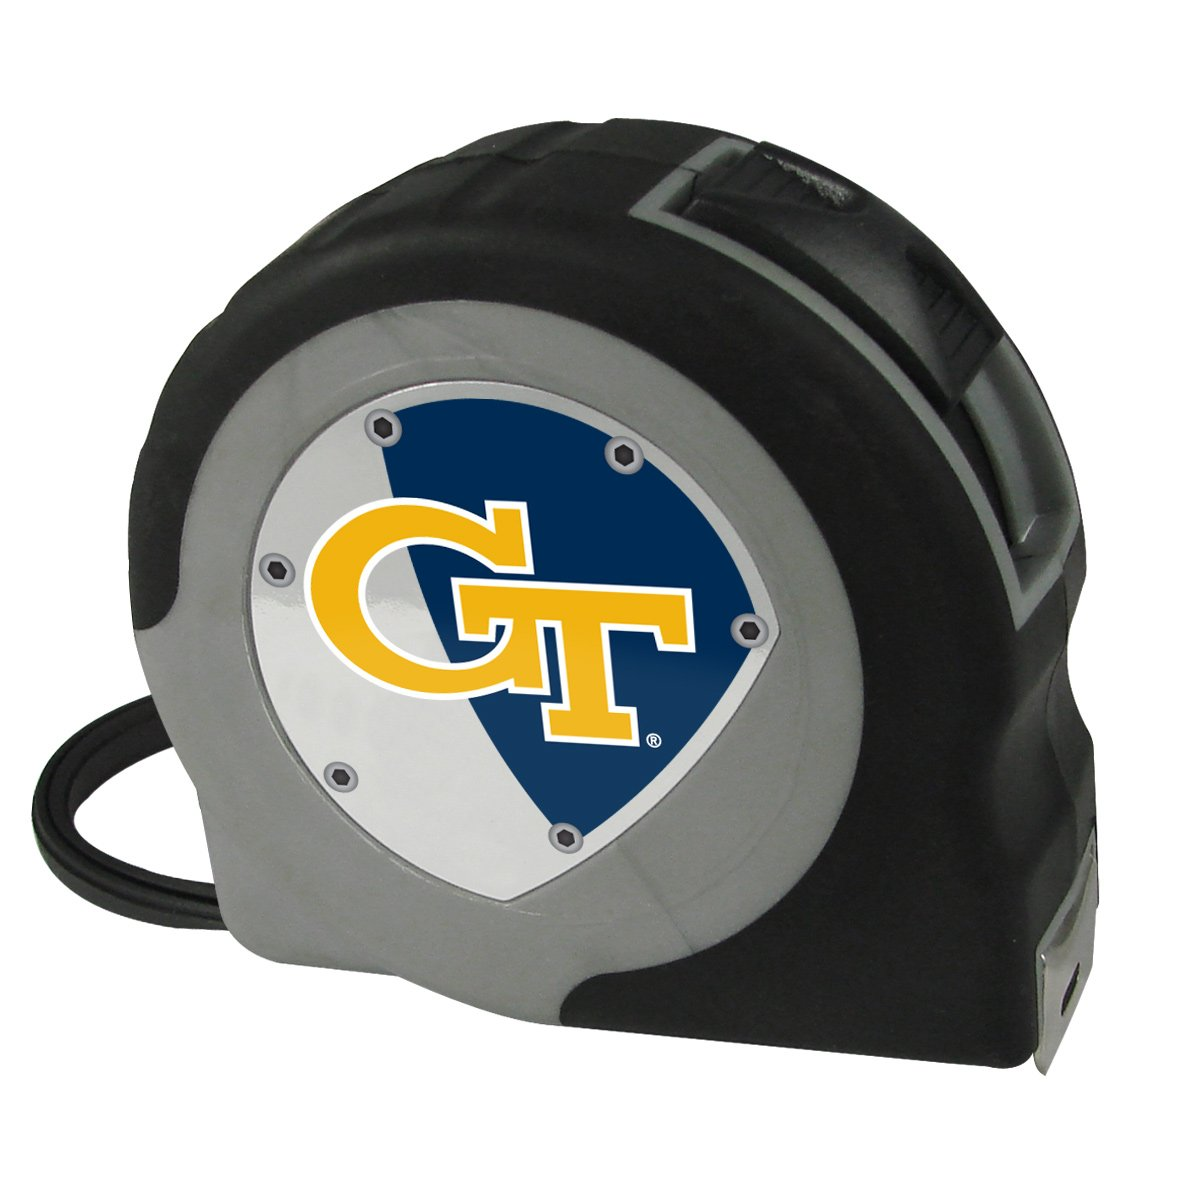 Georgia Tech Yellow Jackets NCAA Pro Grip Tape Measure